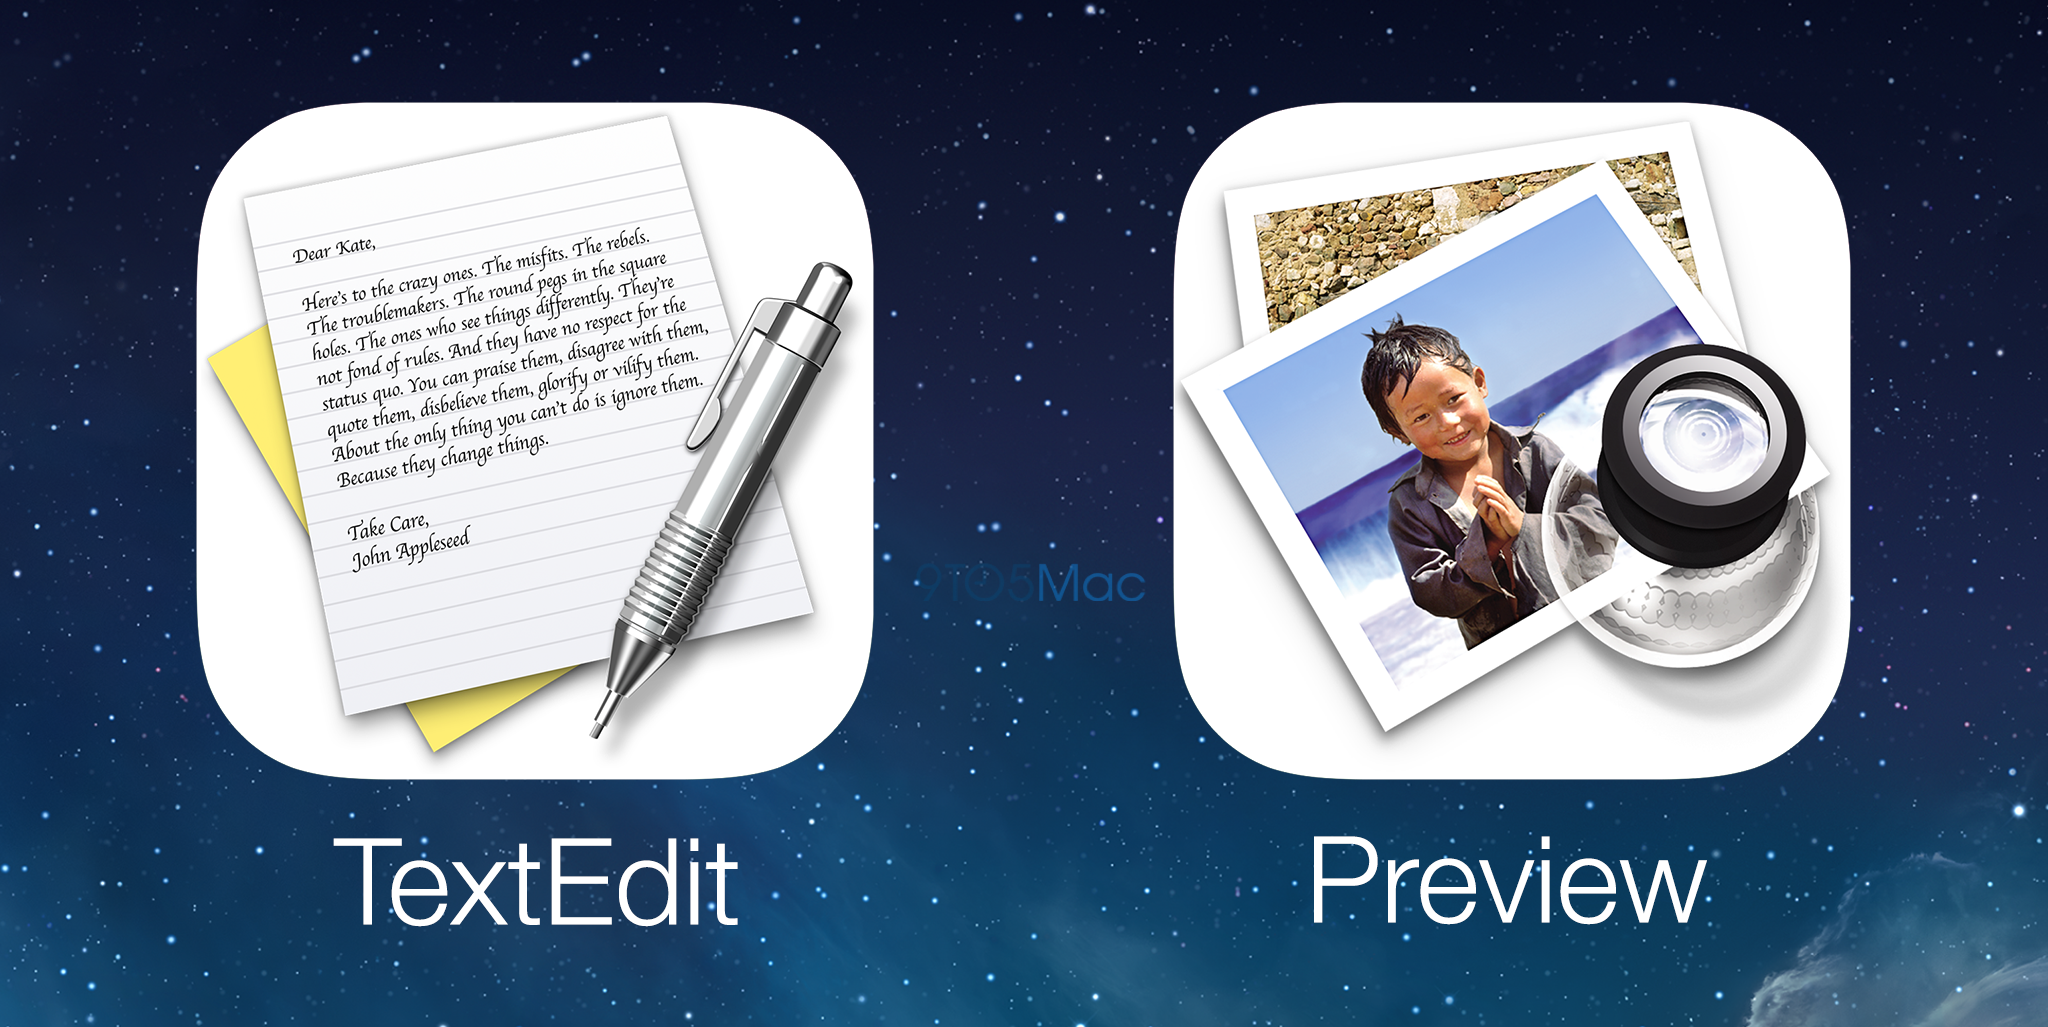 Mockups dos apps TextEdit e Preview para iOS